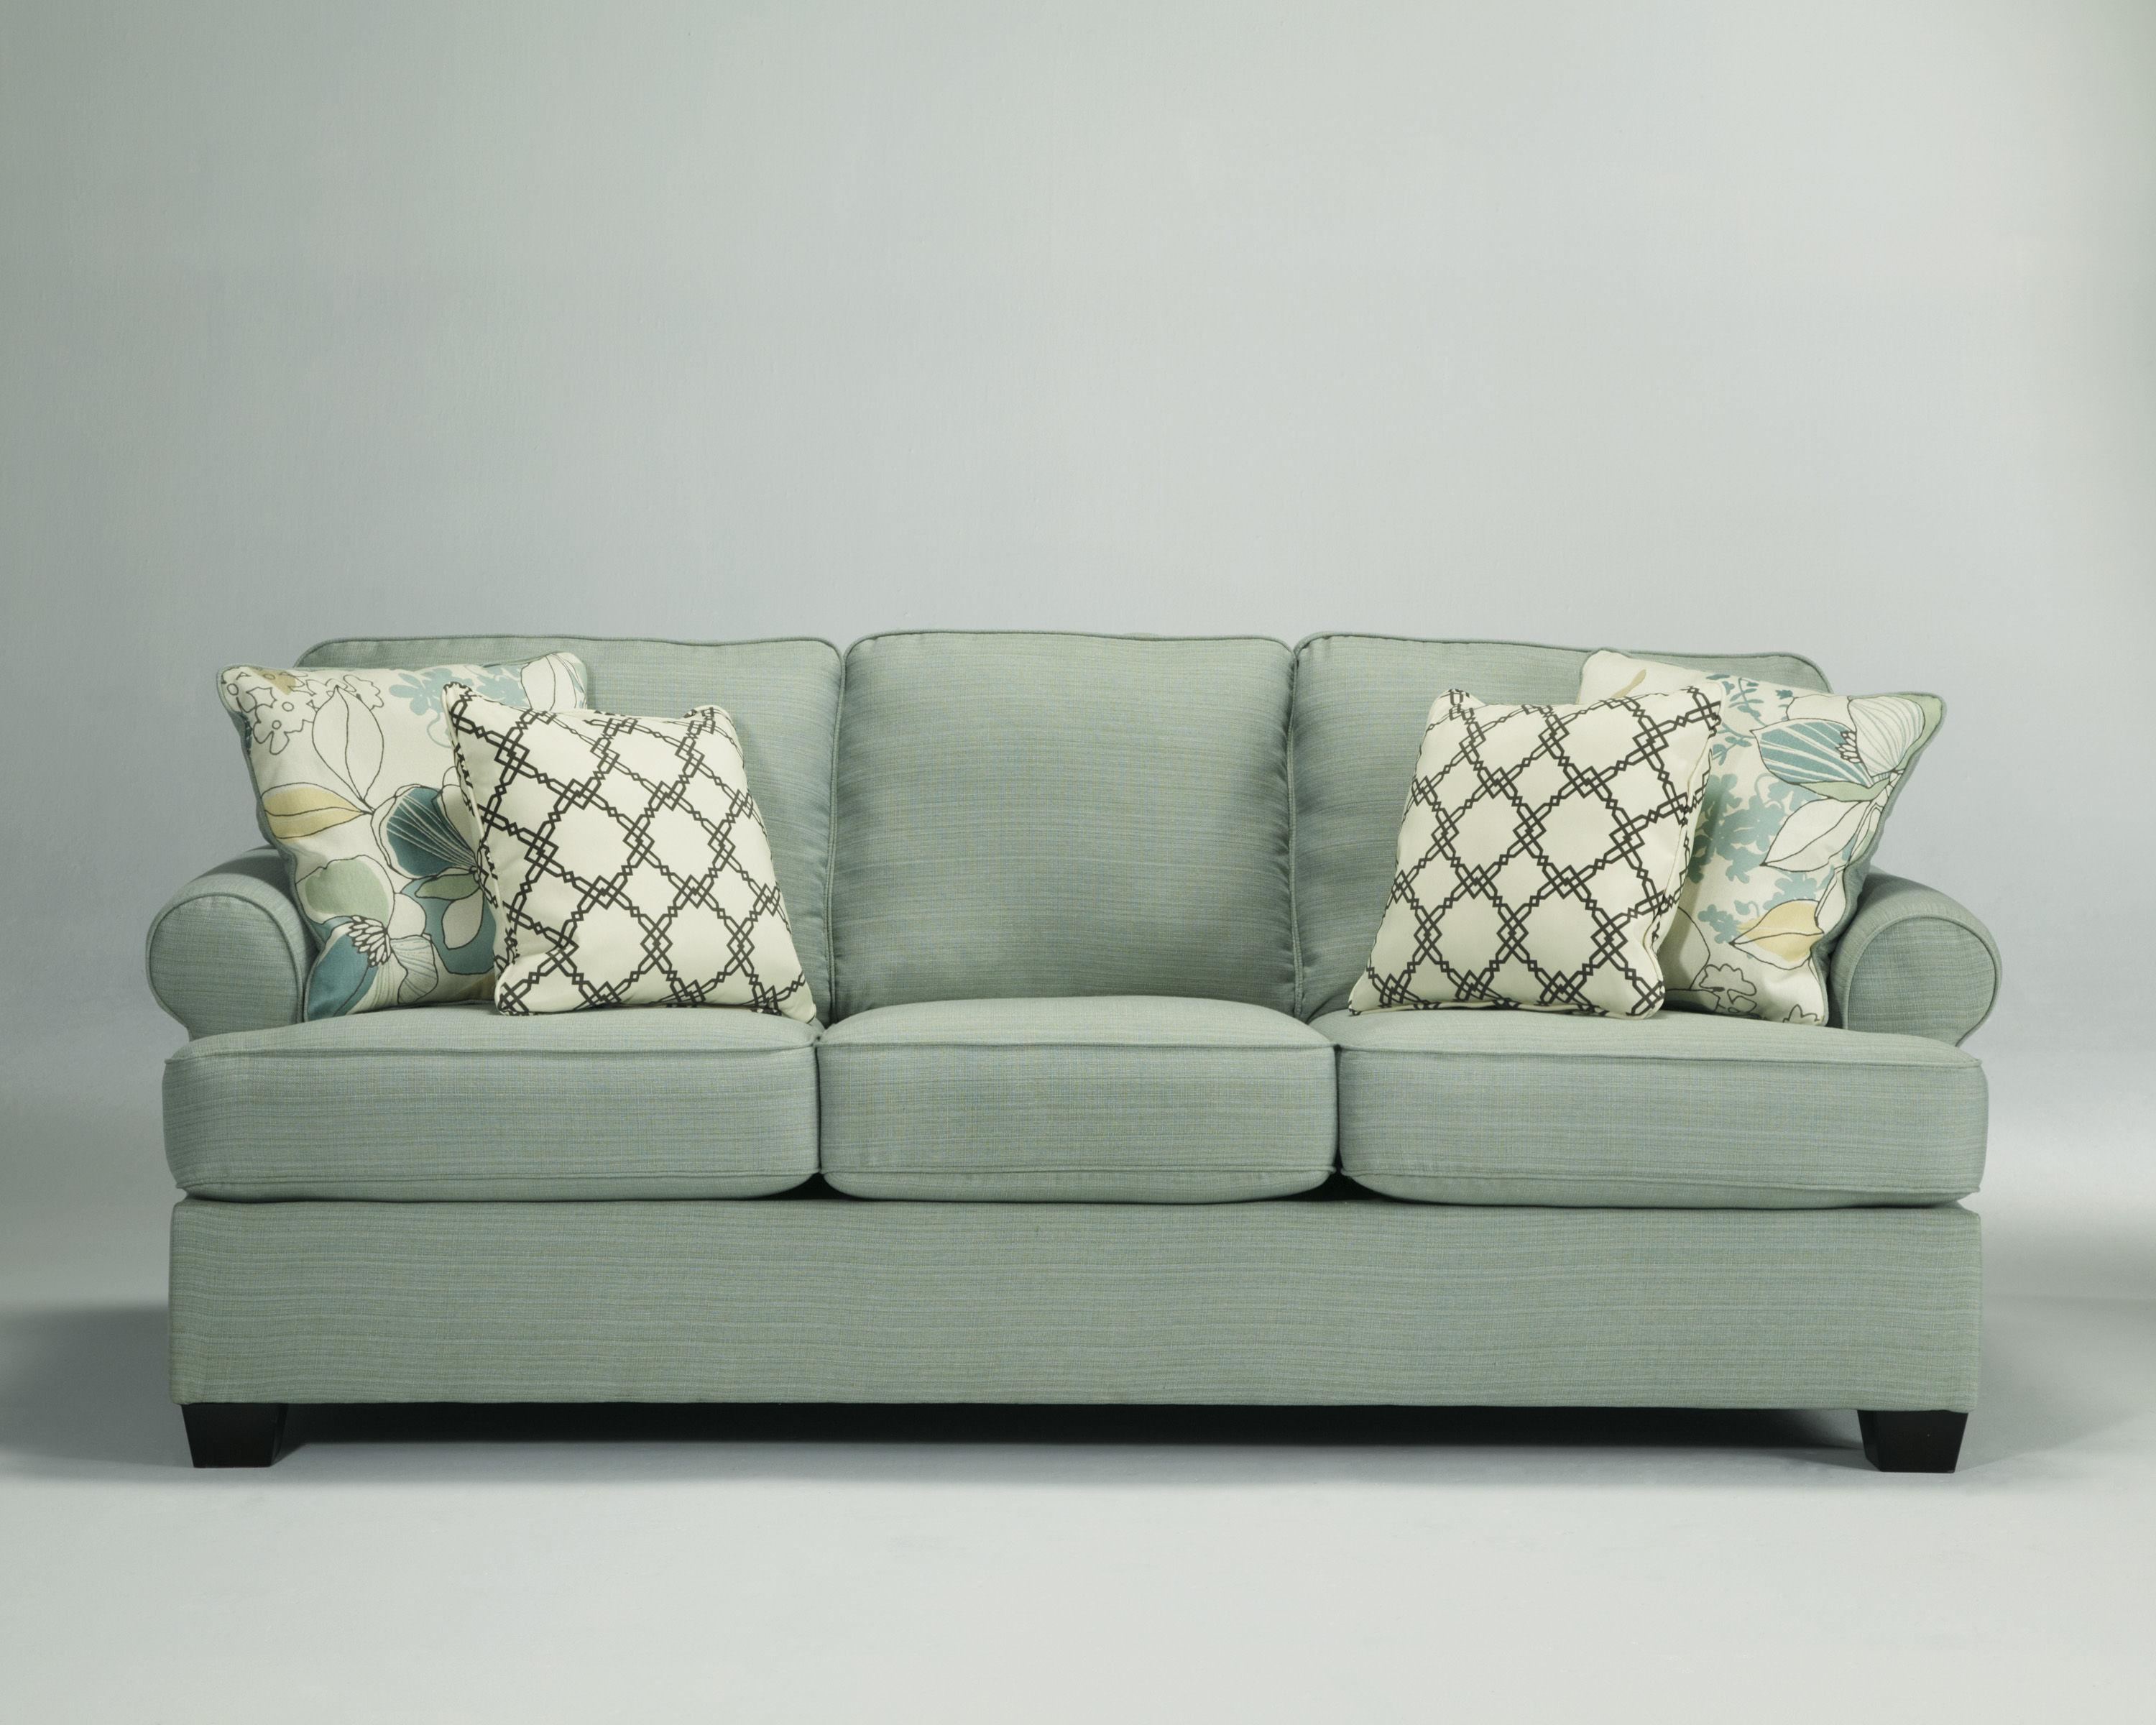 Daystar Contemporary Seafoam Fabric Sofa | Living Rooms | The Intended For Seafoam Green Sofas (View 4 of 20)